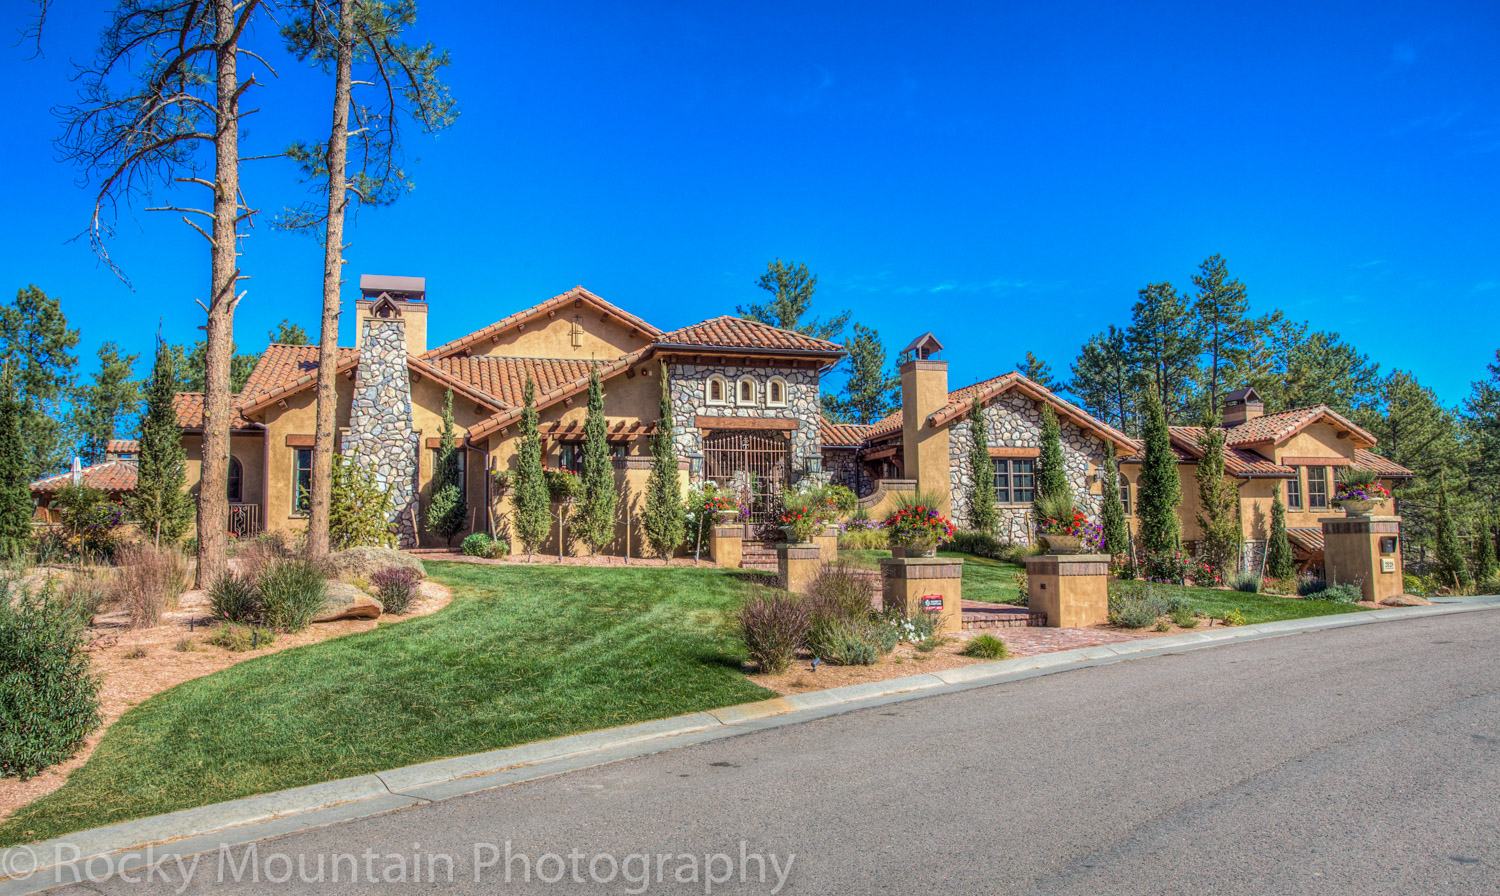 Residential Real Estate HDR Exterior-21